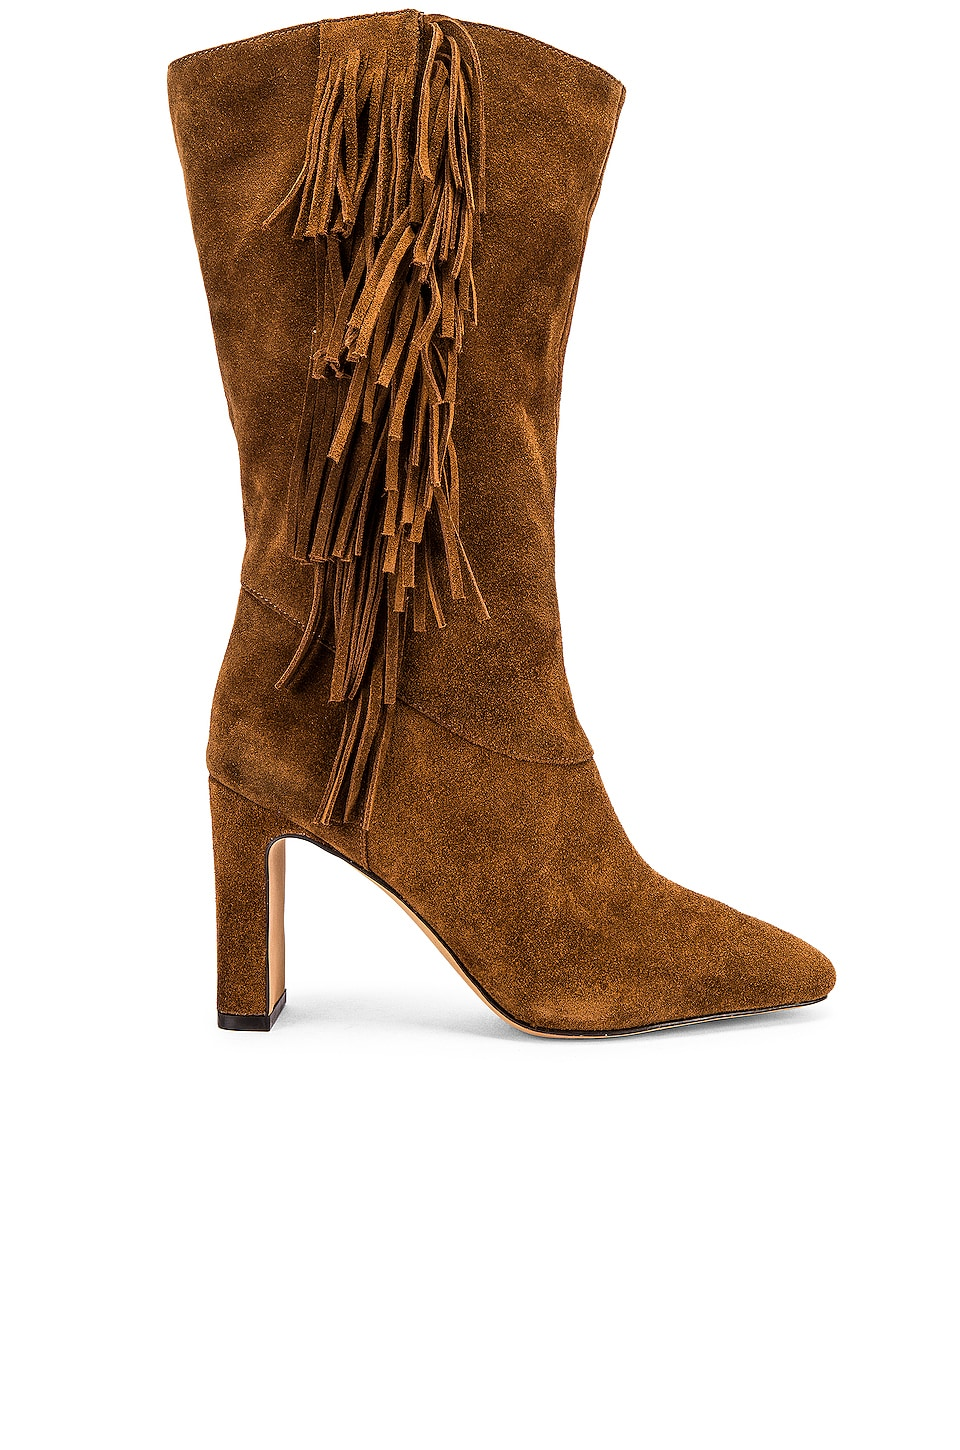 Vince Camuto Sterla Boot in Vintage Brown Suede